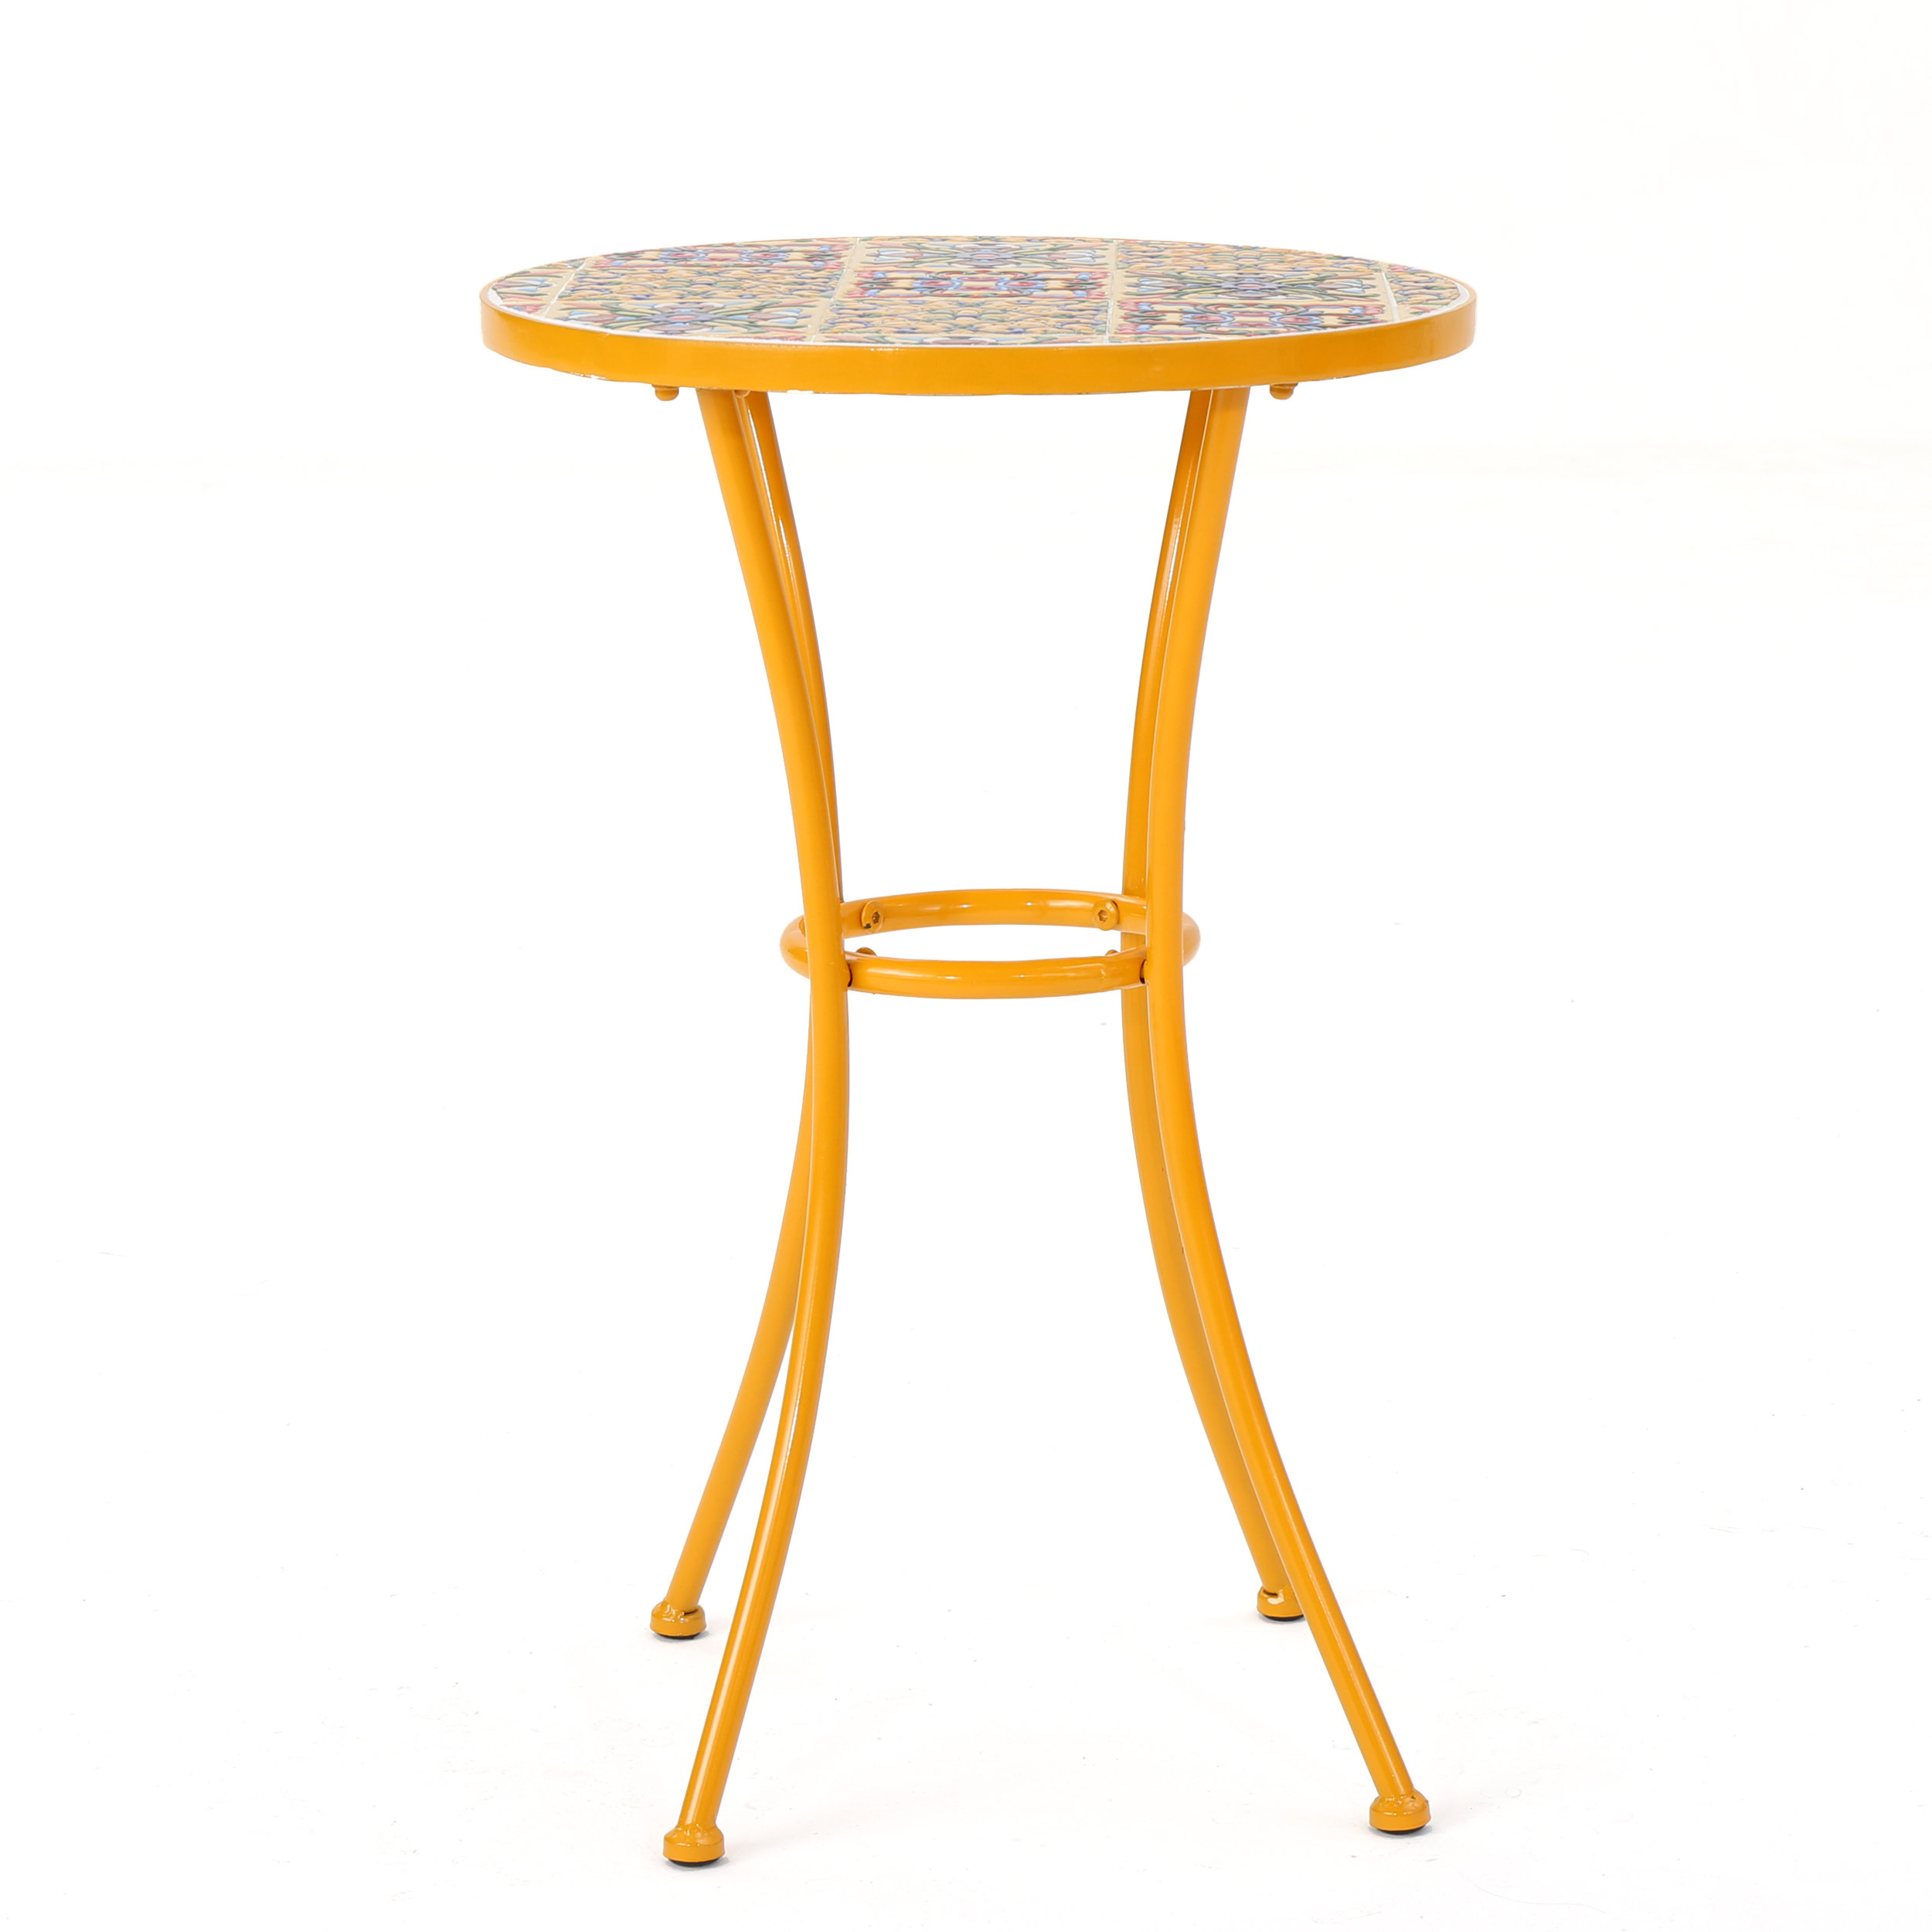 chantel outdoor ceramic tile side table reviews joss main small linen tablecloth barnwood cabinets between two recliners ikea cube storage unit circular garden furniture covers